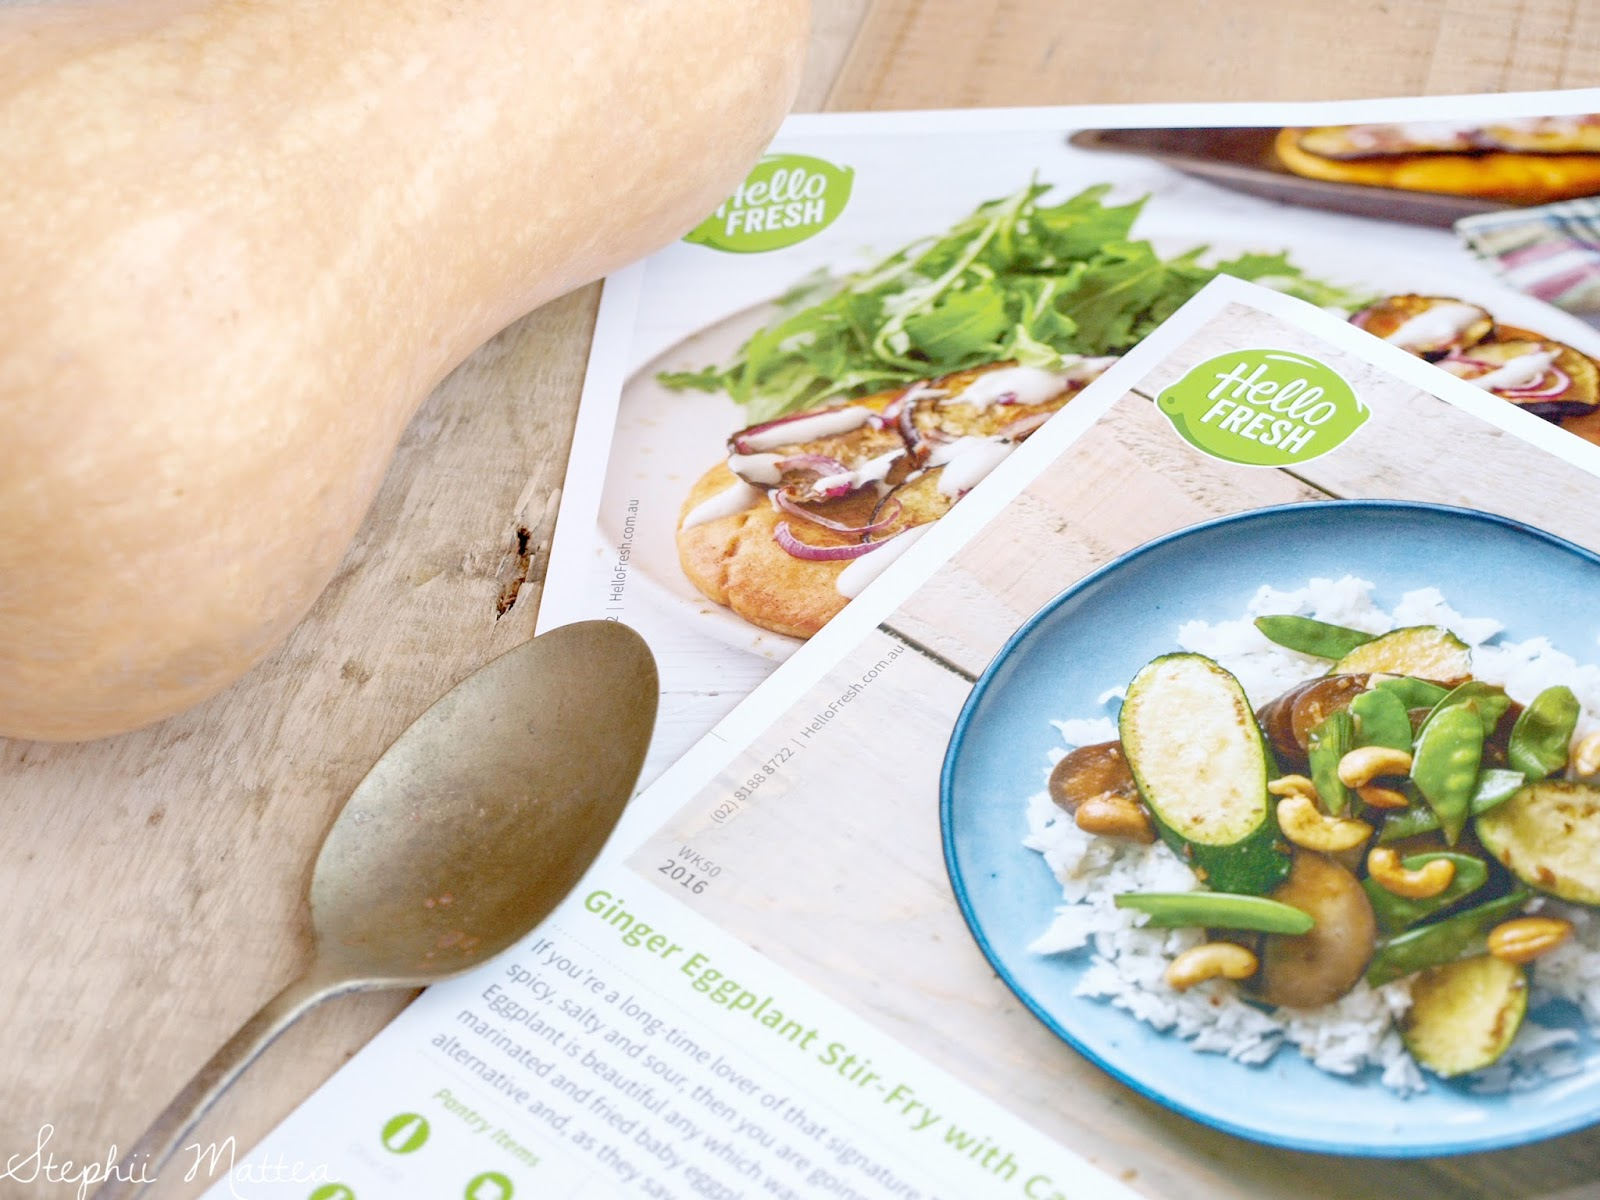 Hellofresh Refurbished Meal Kit Delivery Service